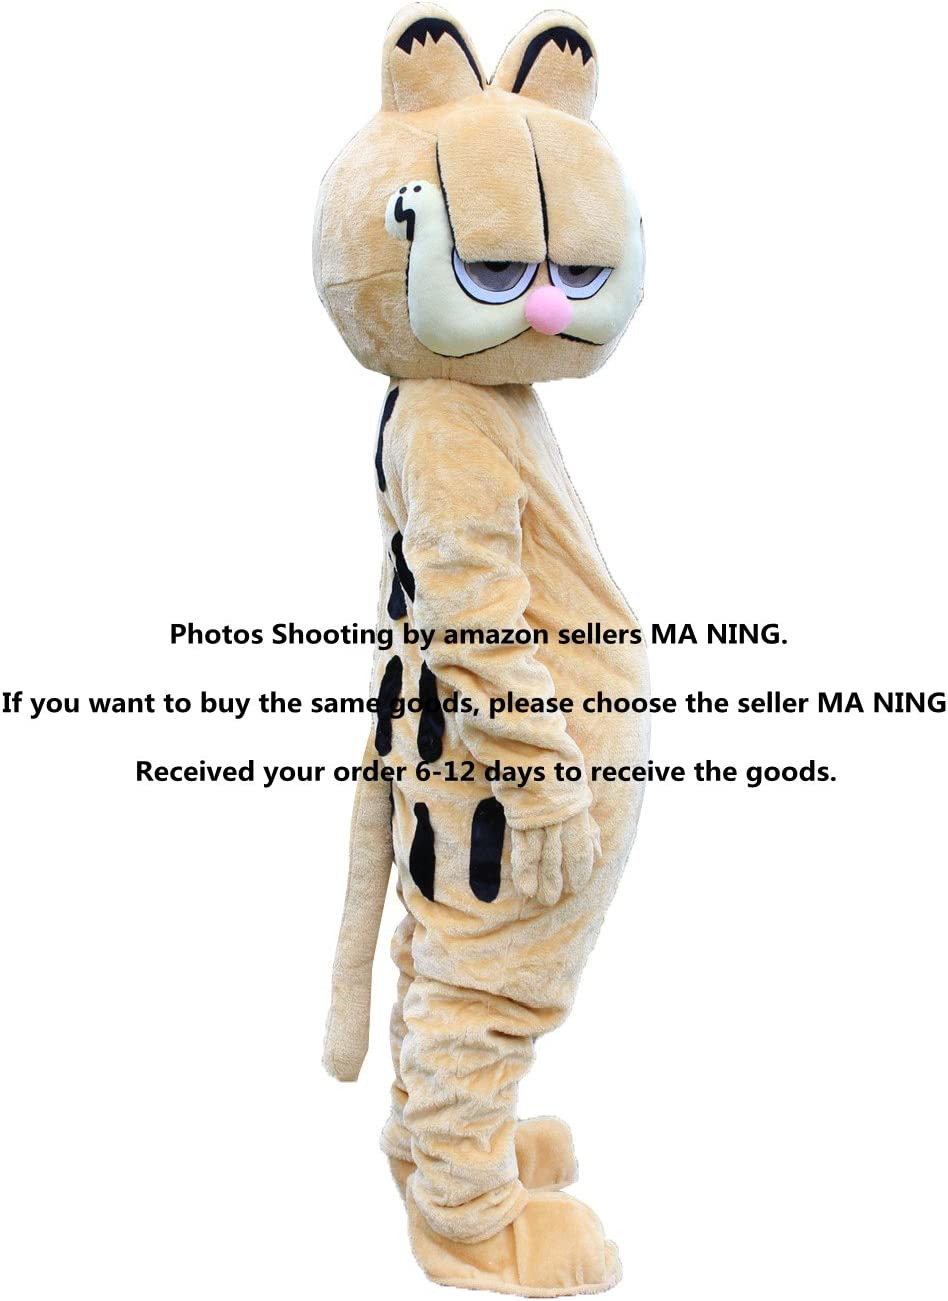 New Garfield Adult Mascot Costume Fancy Dress Eva Material Amazon Co Uk Sports Outdoors